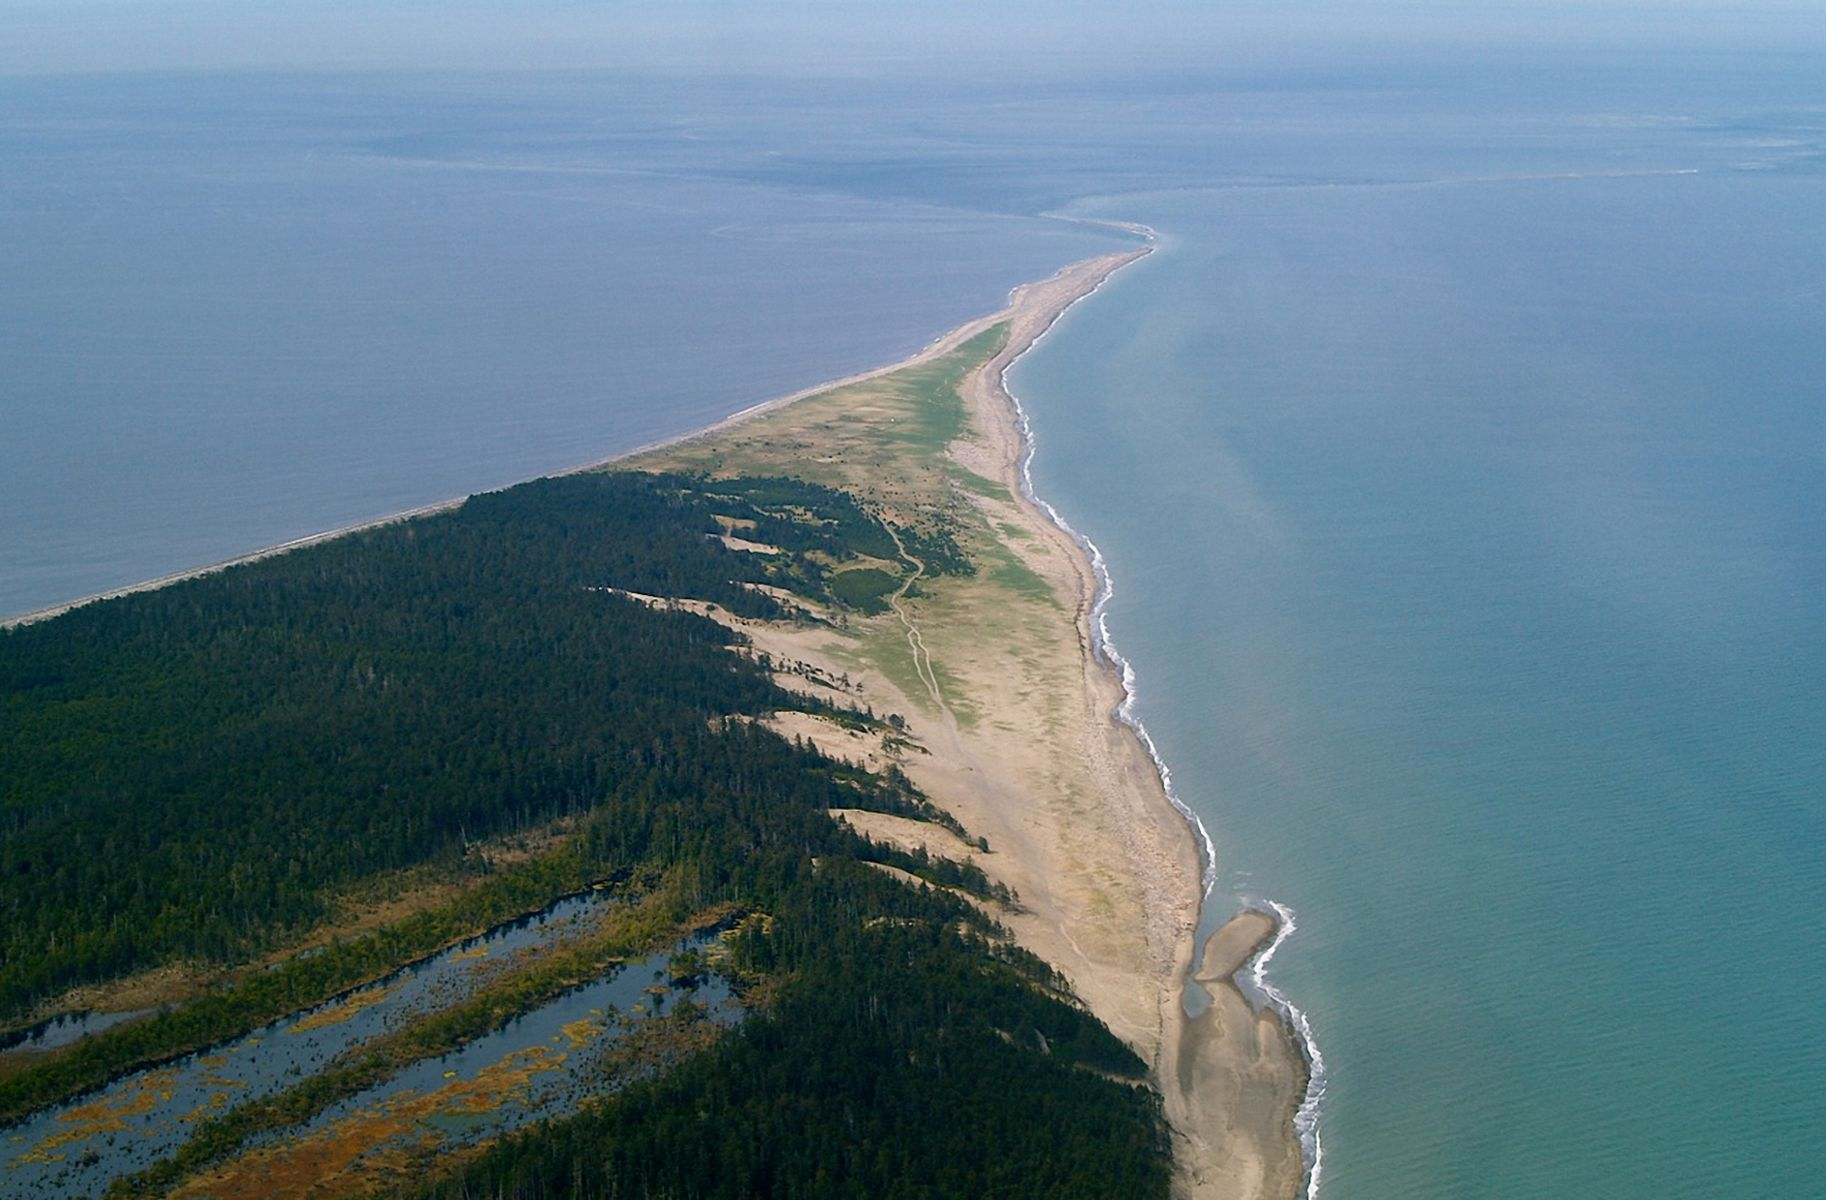 Aerial view of a spit of land stretching out into the water.